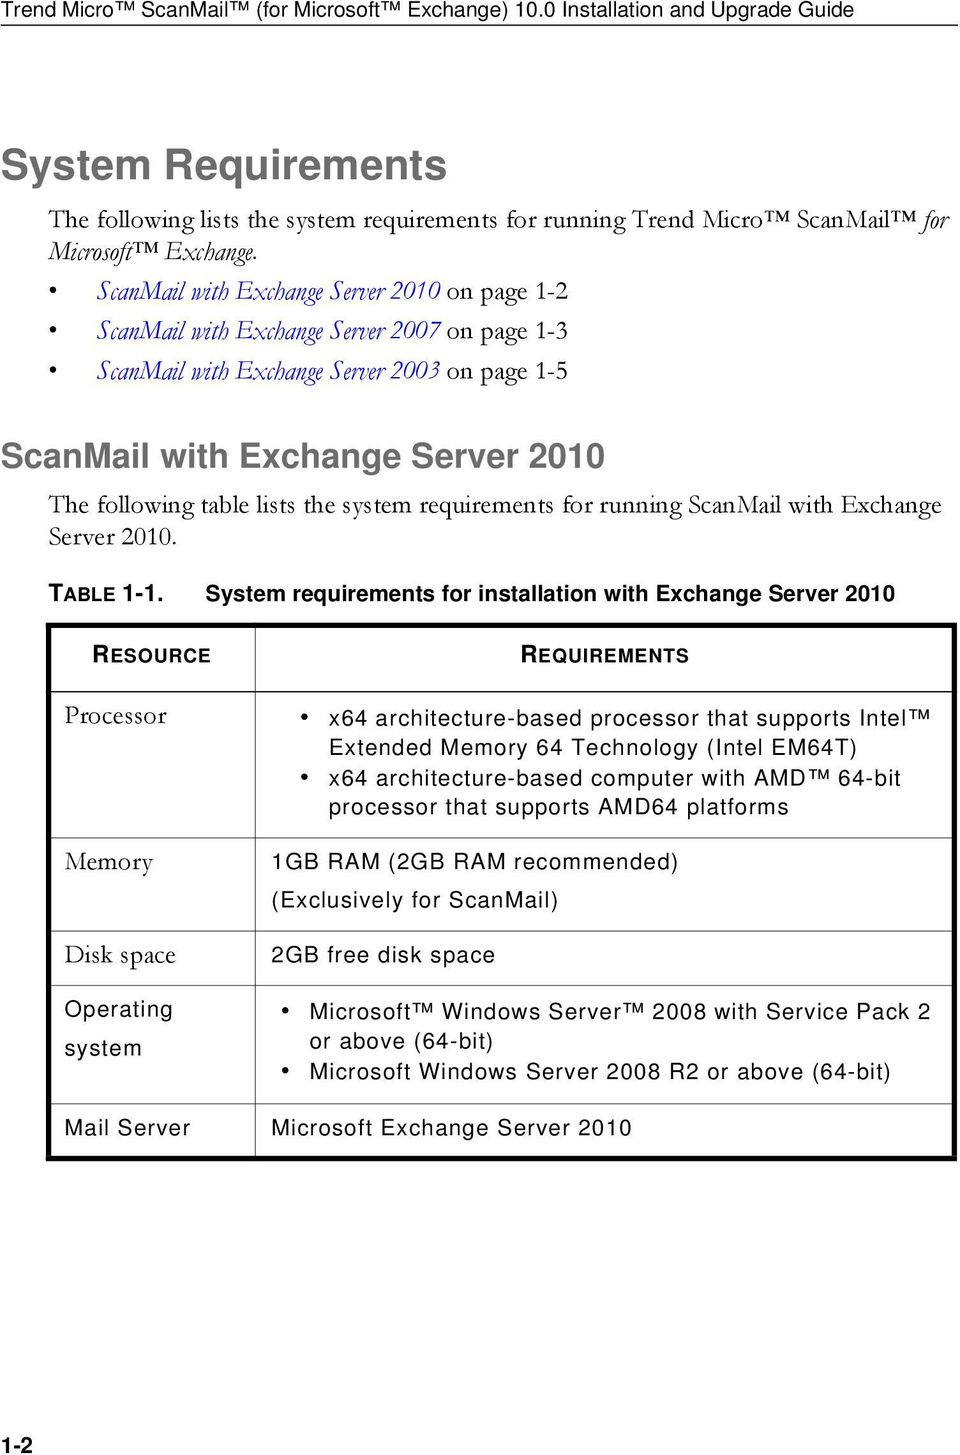 ScanMail with Exchange Server 2010 on page 1-2 ScanMail with Exchange Server 2007 on page 1-3 ScanMail with Exchange Server 2003 on page 1-5 ScanMail with Exchange Server 2010 The following table